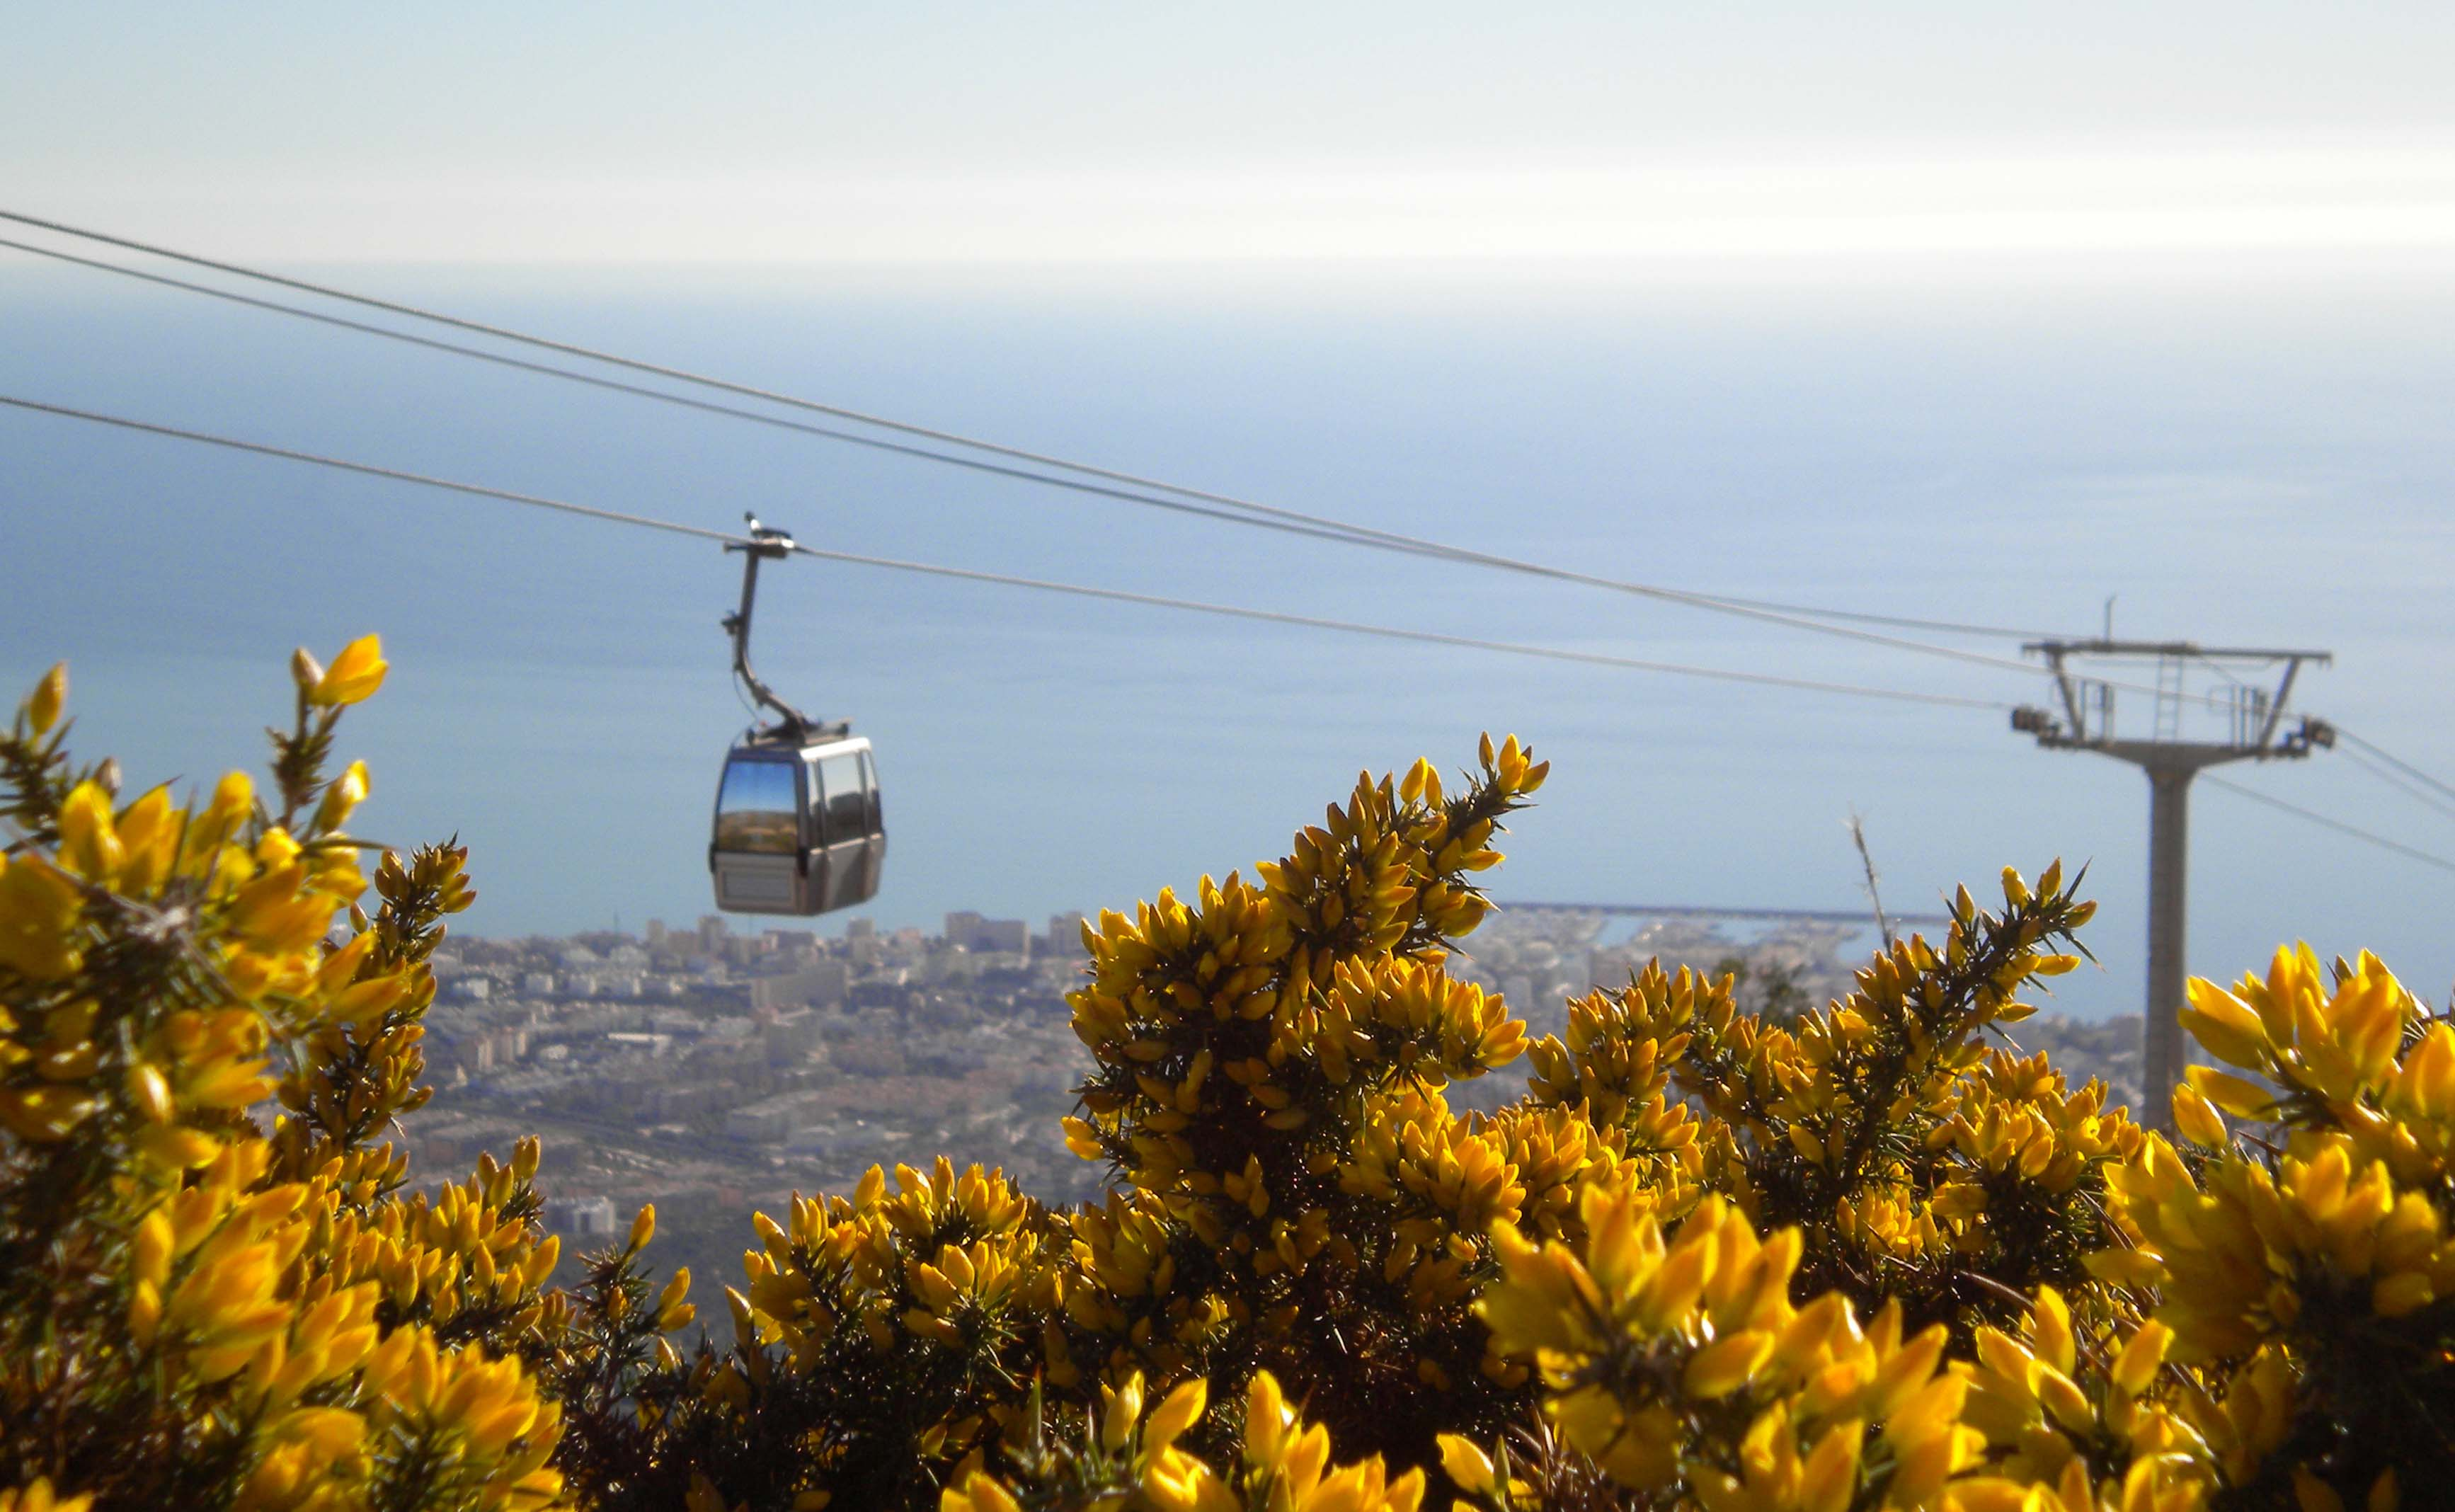 Benalmádena Cable Car, Selwo Aventura and Selwo Marina are already preparing the new 2018 Season